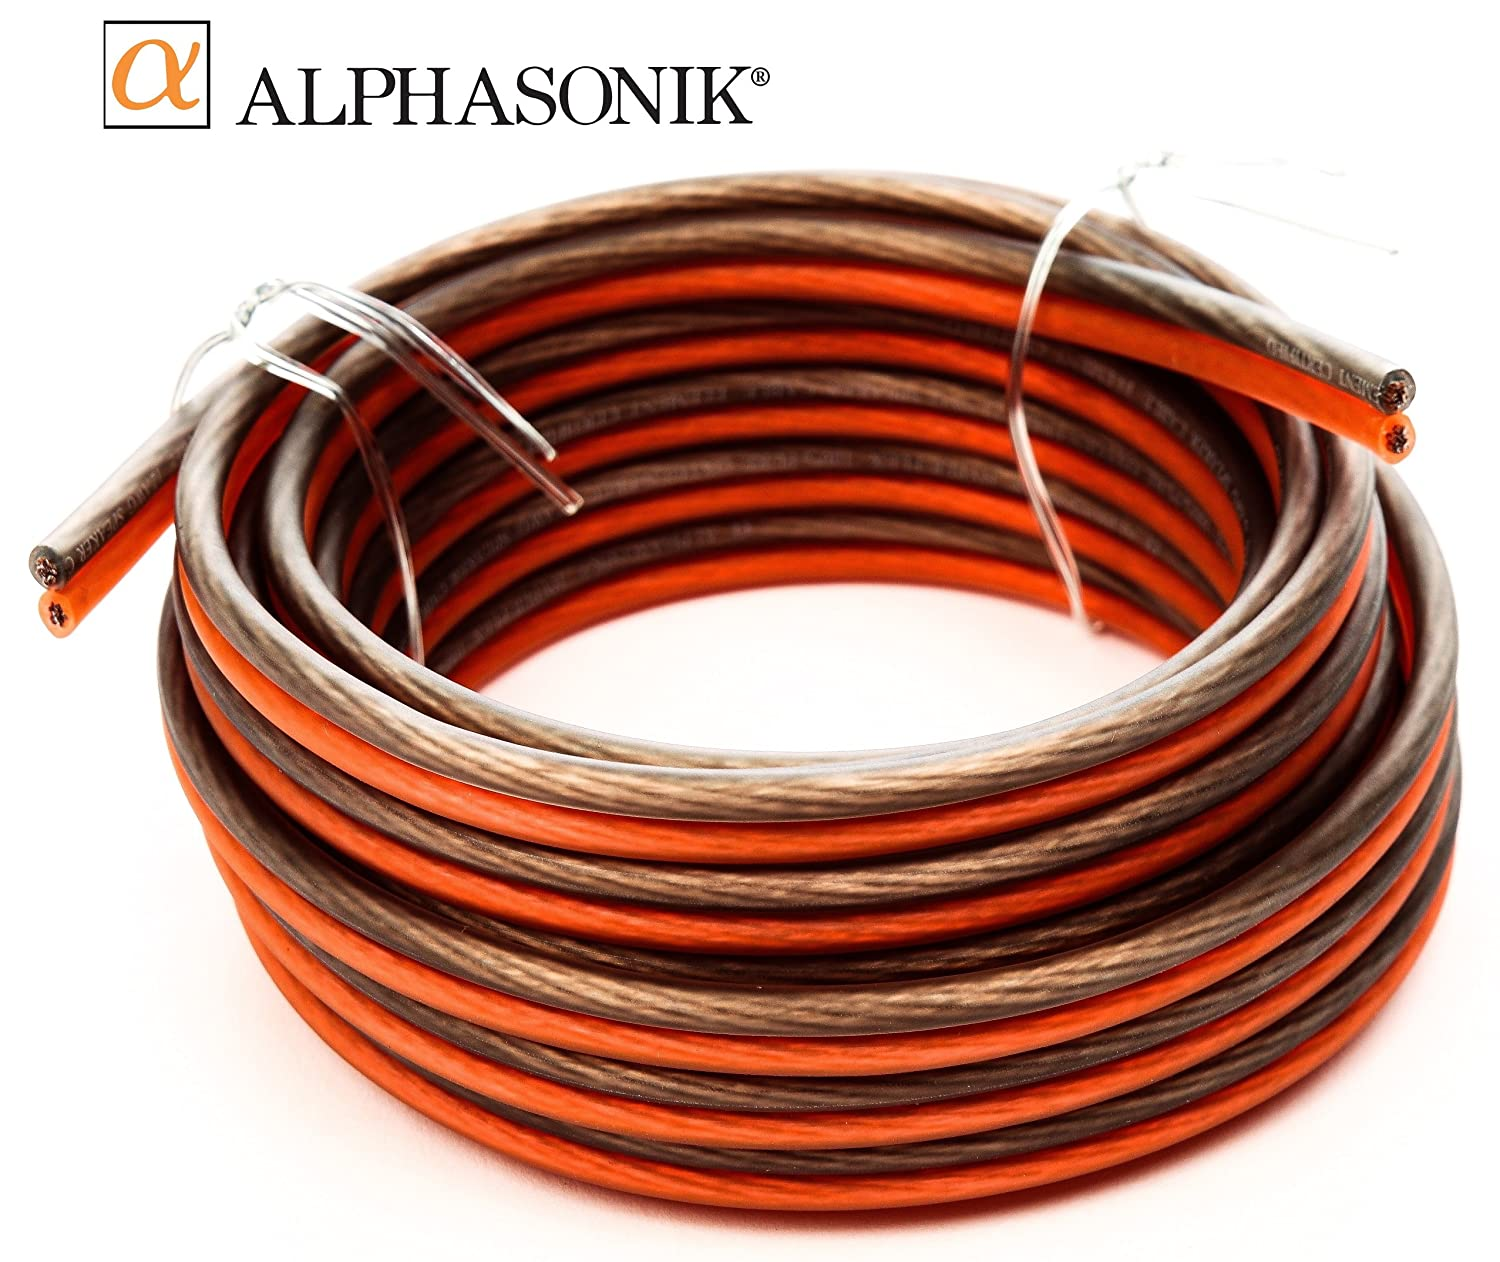 Alphasonik Aak0g Premium 0 Gauge Complete Car Amplifier 10 Awg Amp Wire Sub Subwoofer Wiring Kit Installation Hyper Flex Power Ground Speaker Rca Cable Exceeds